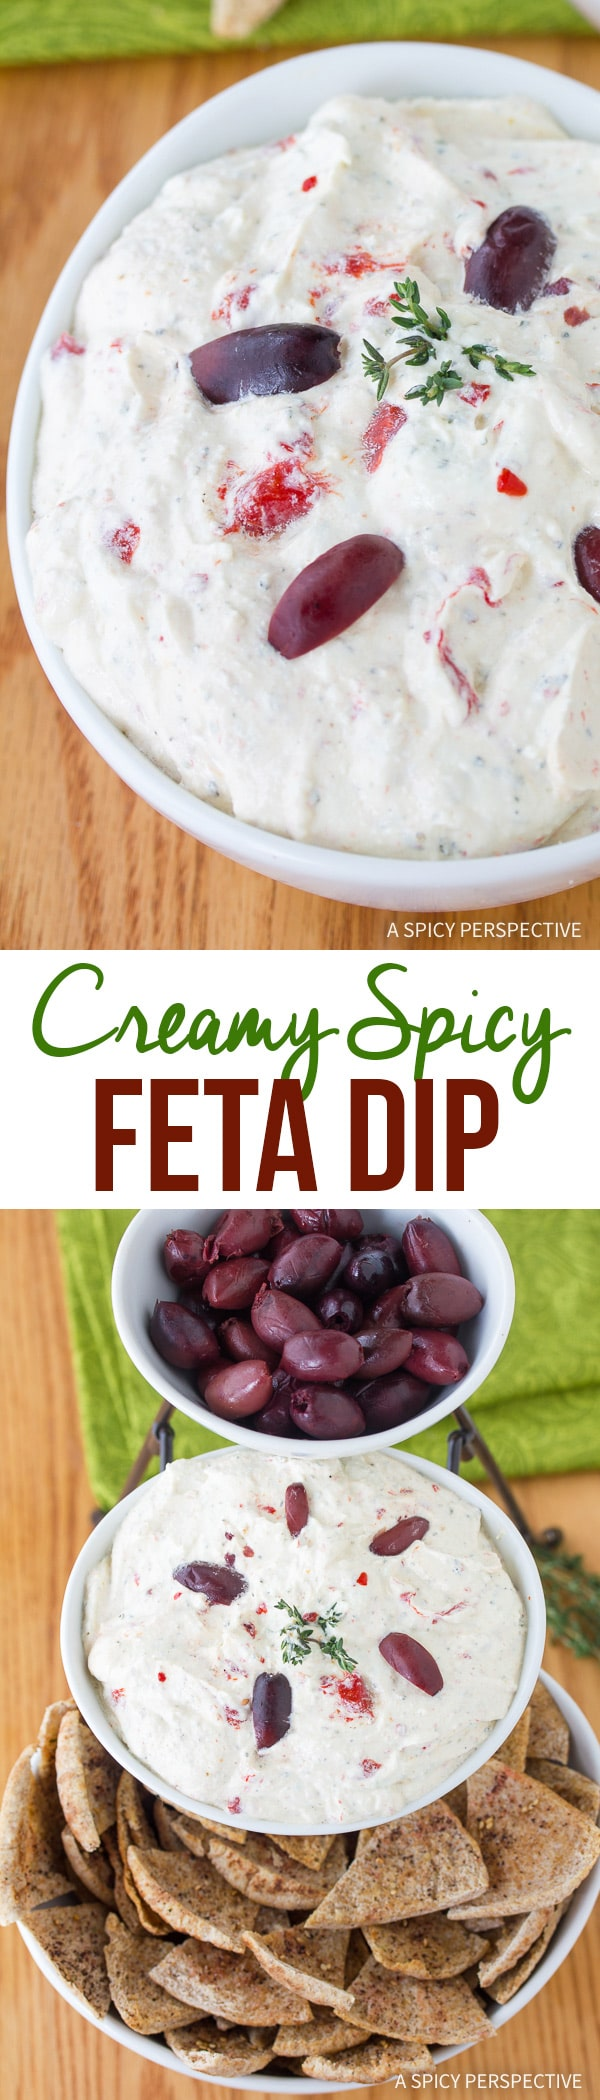 Spicy Feta Dip with Roasted Red Peppers Recipe - This robust savory cheese dip is rich and satisfying. Loaded with a roasted red peppers, garlic, and herbs, it's completely addictive!